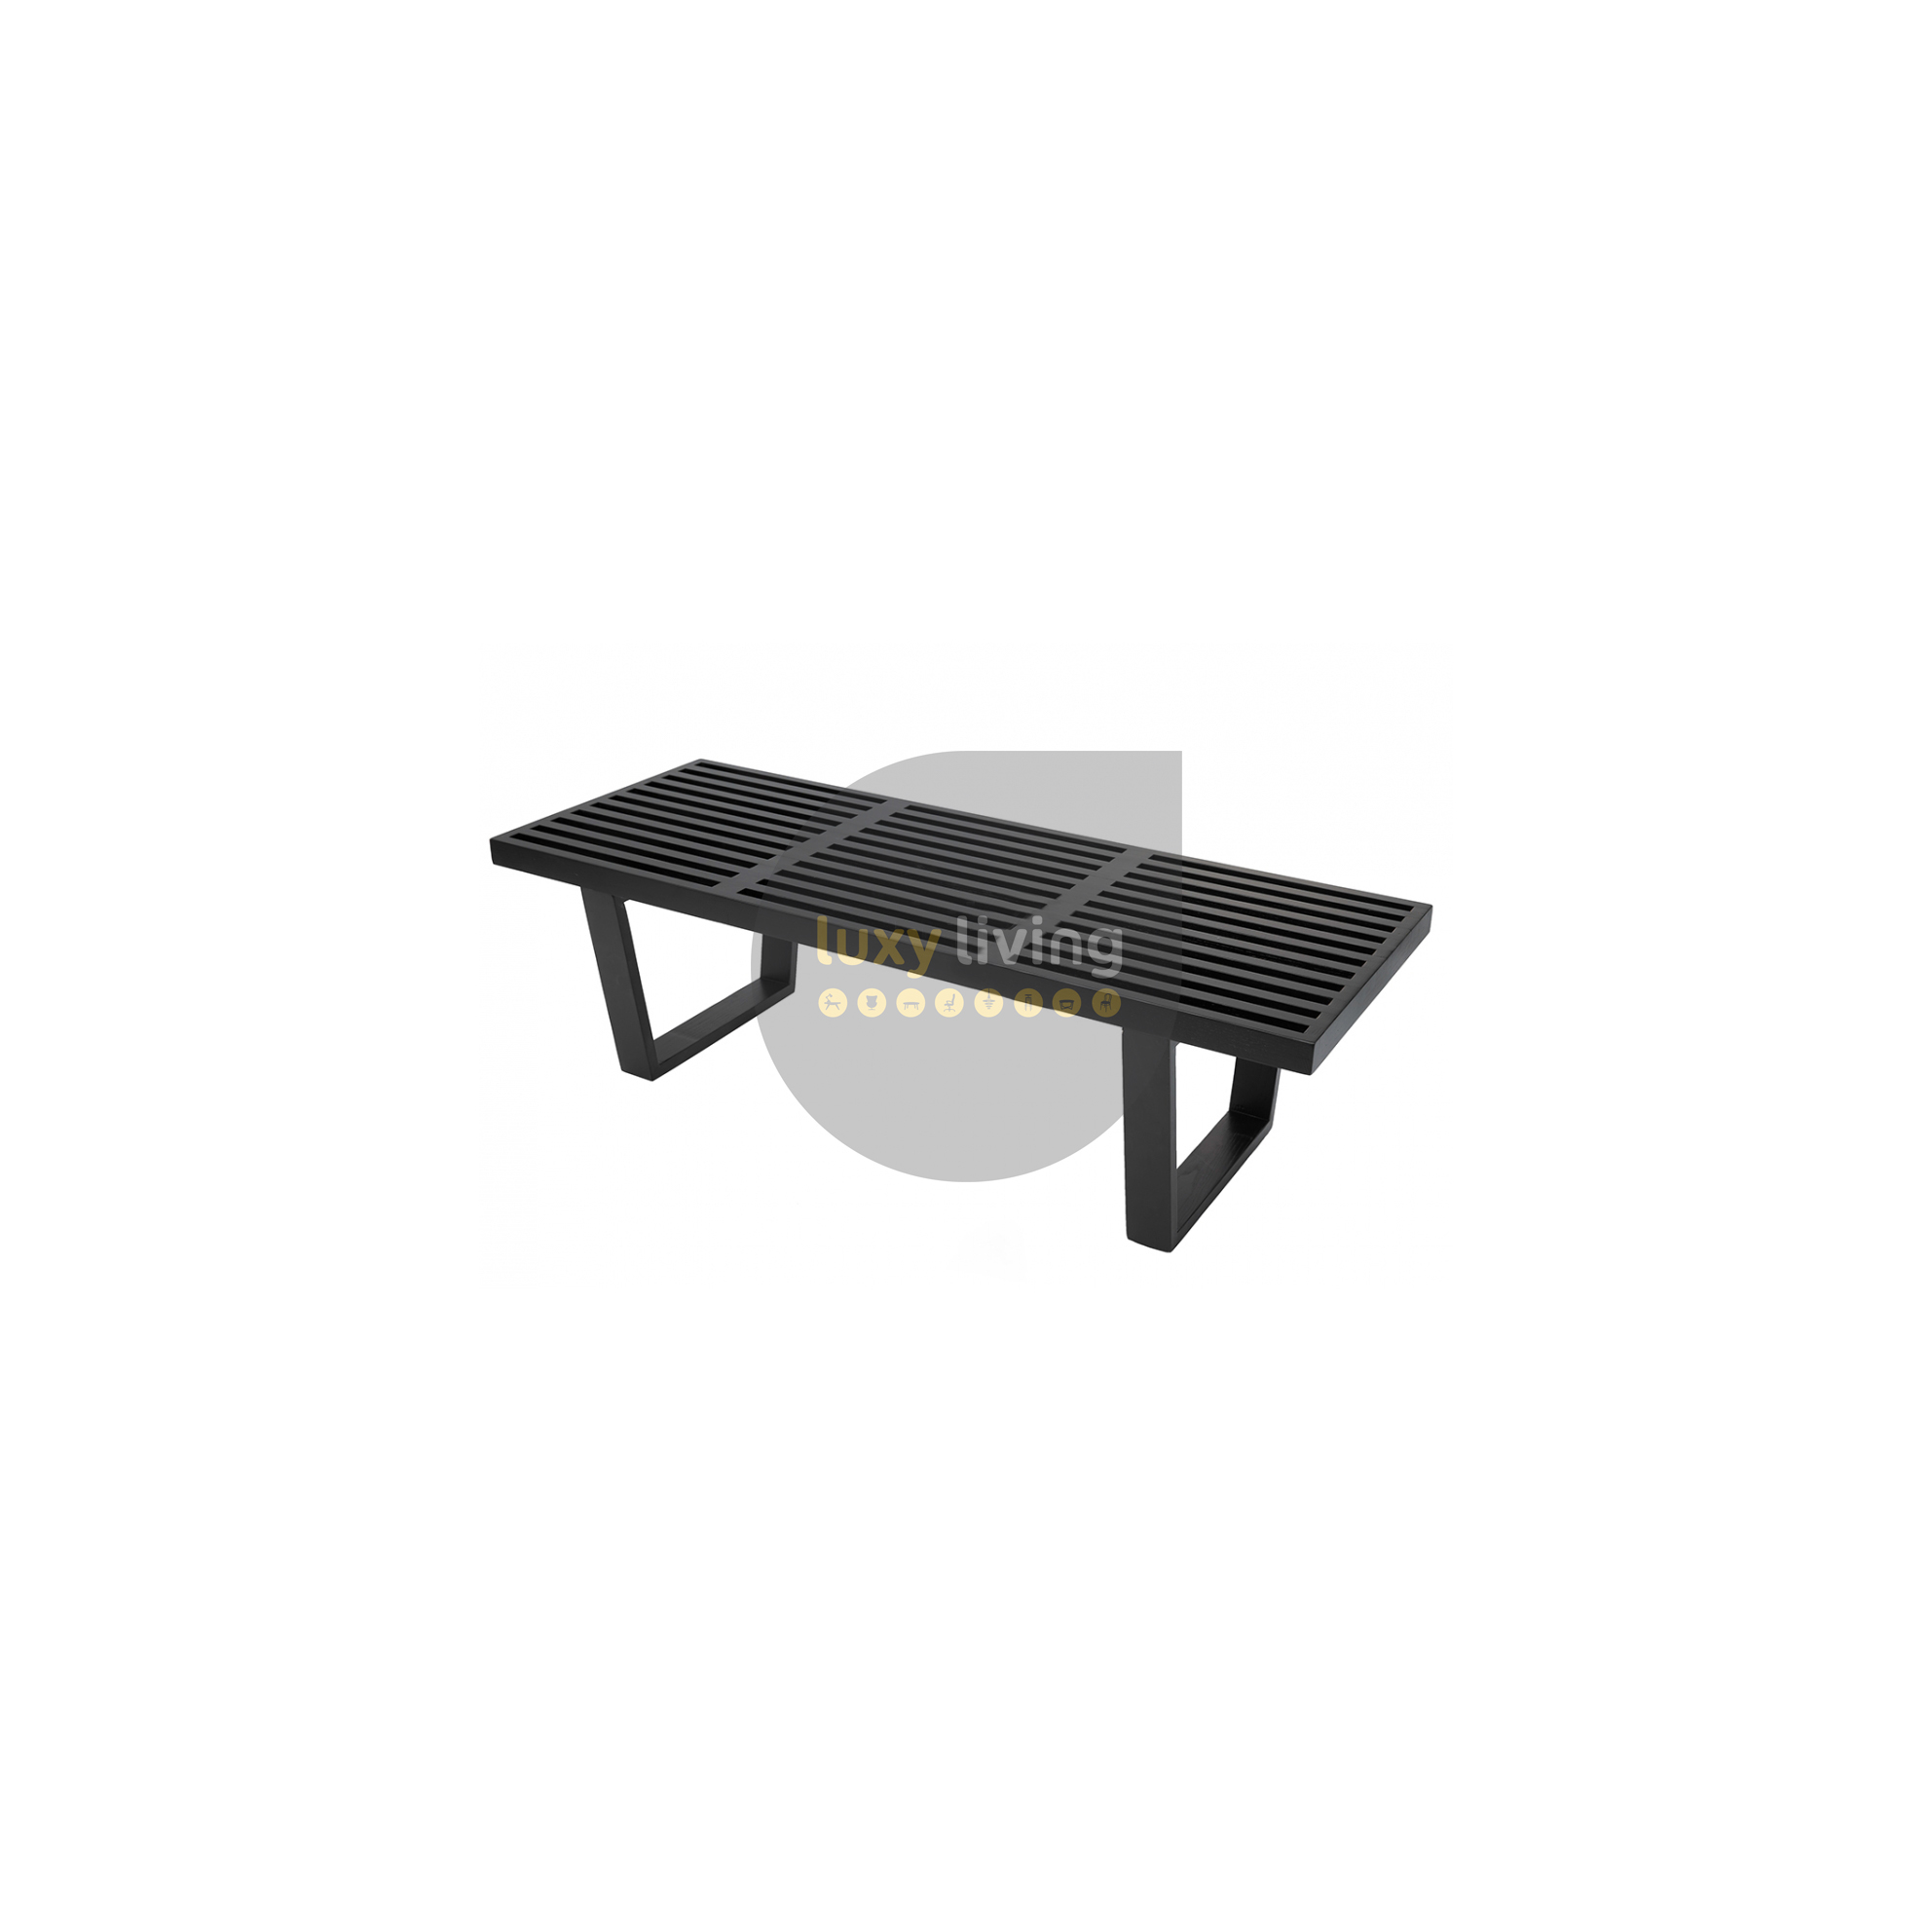 Pleasing Replica George Nelson Platform Bench Black 122Cm Gmtry Best Dining Table And Chair Ideas Images Gmtryco